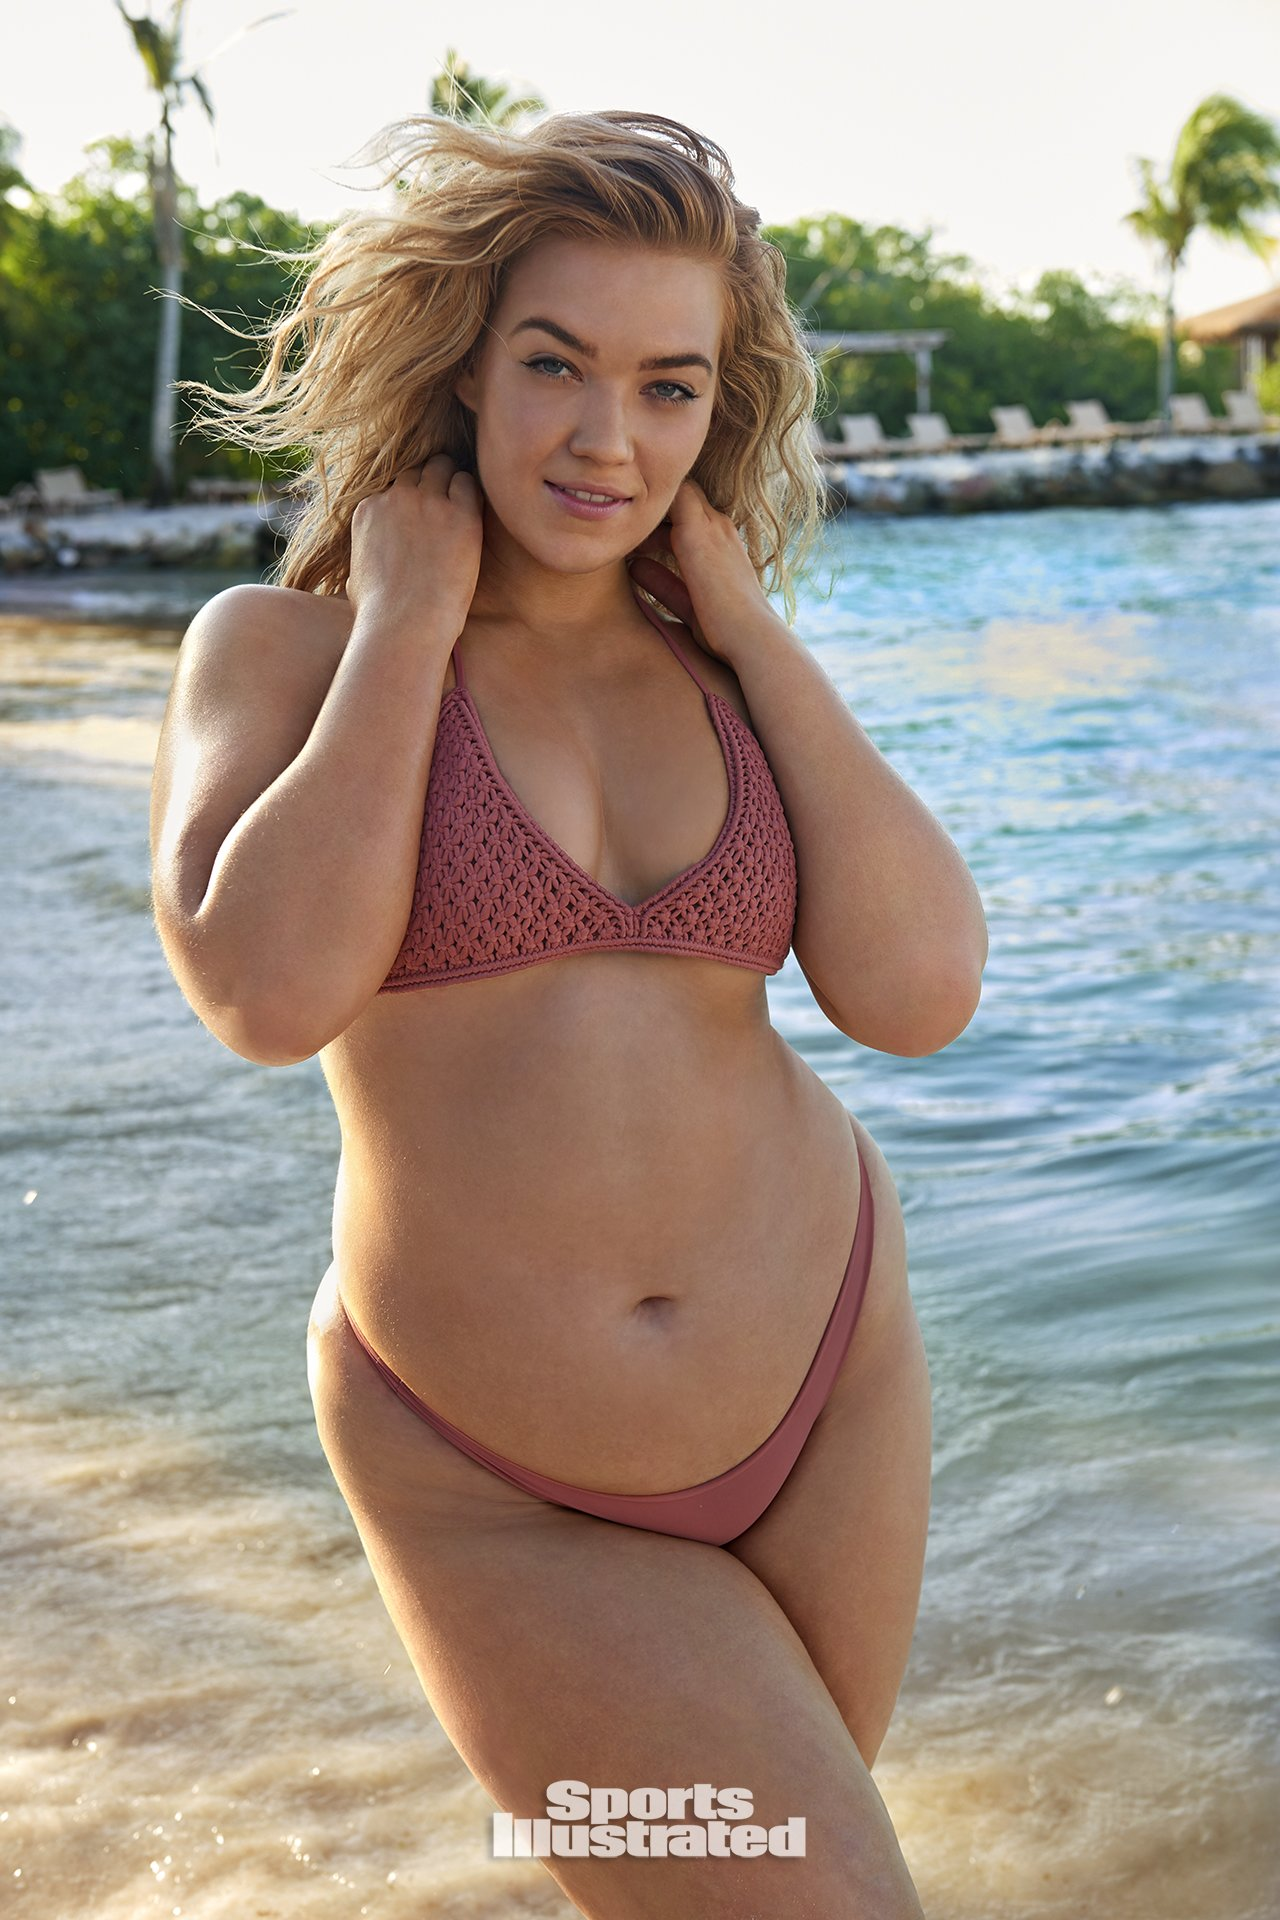 Sports Illustrated Swimsuit Issue 2018001.jpg